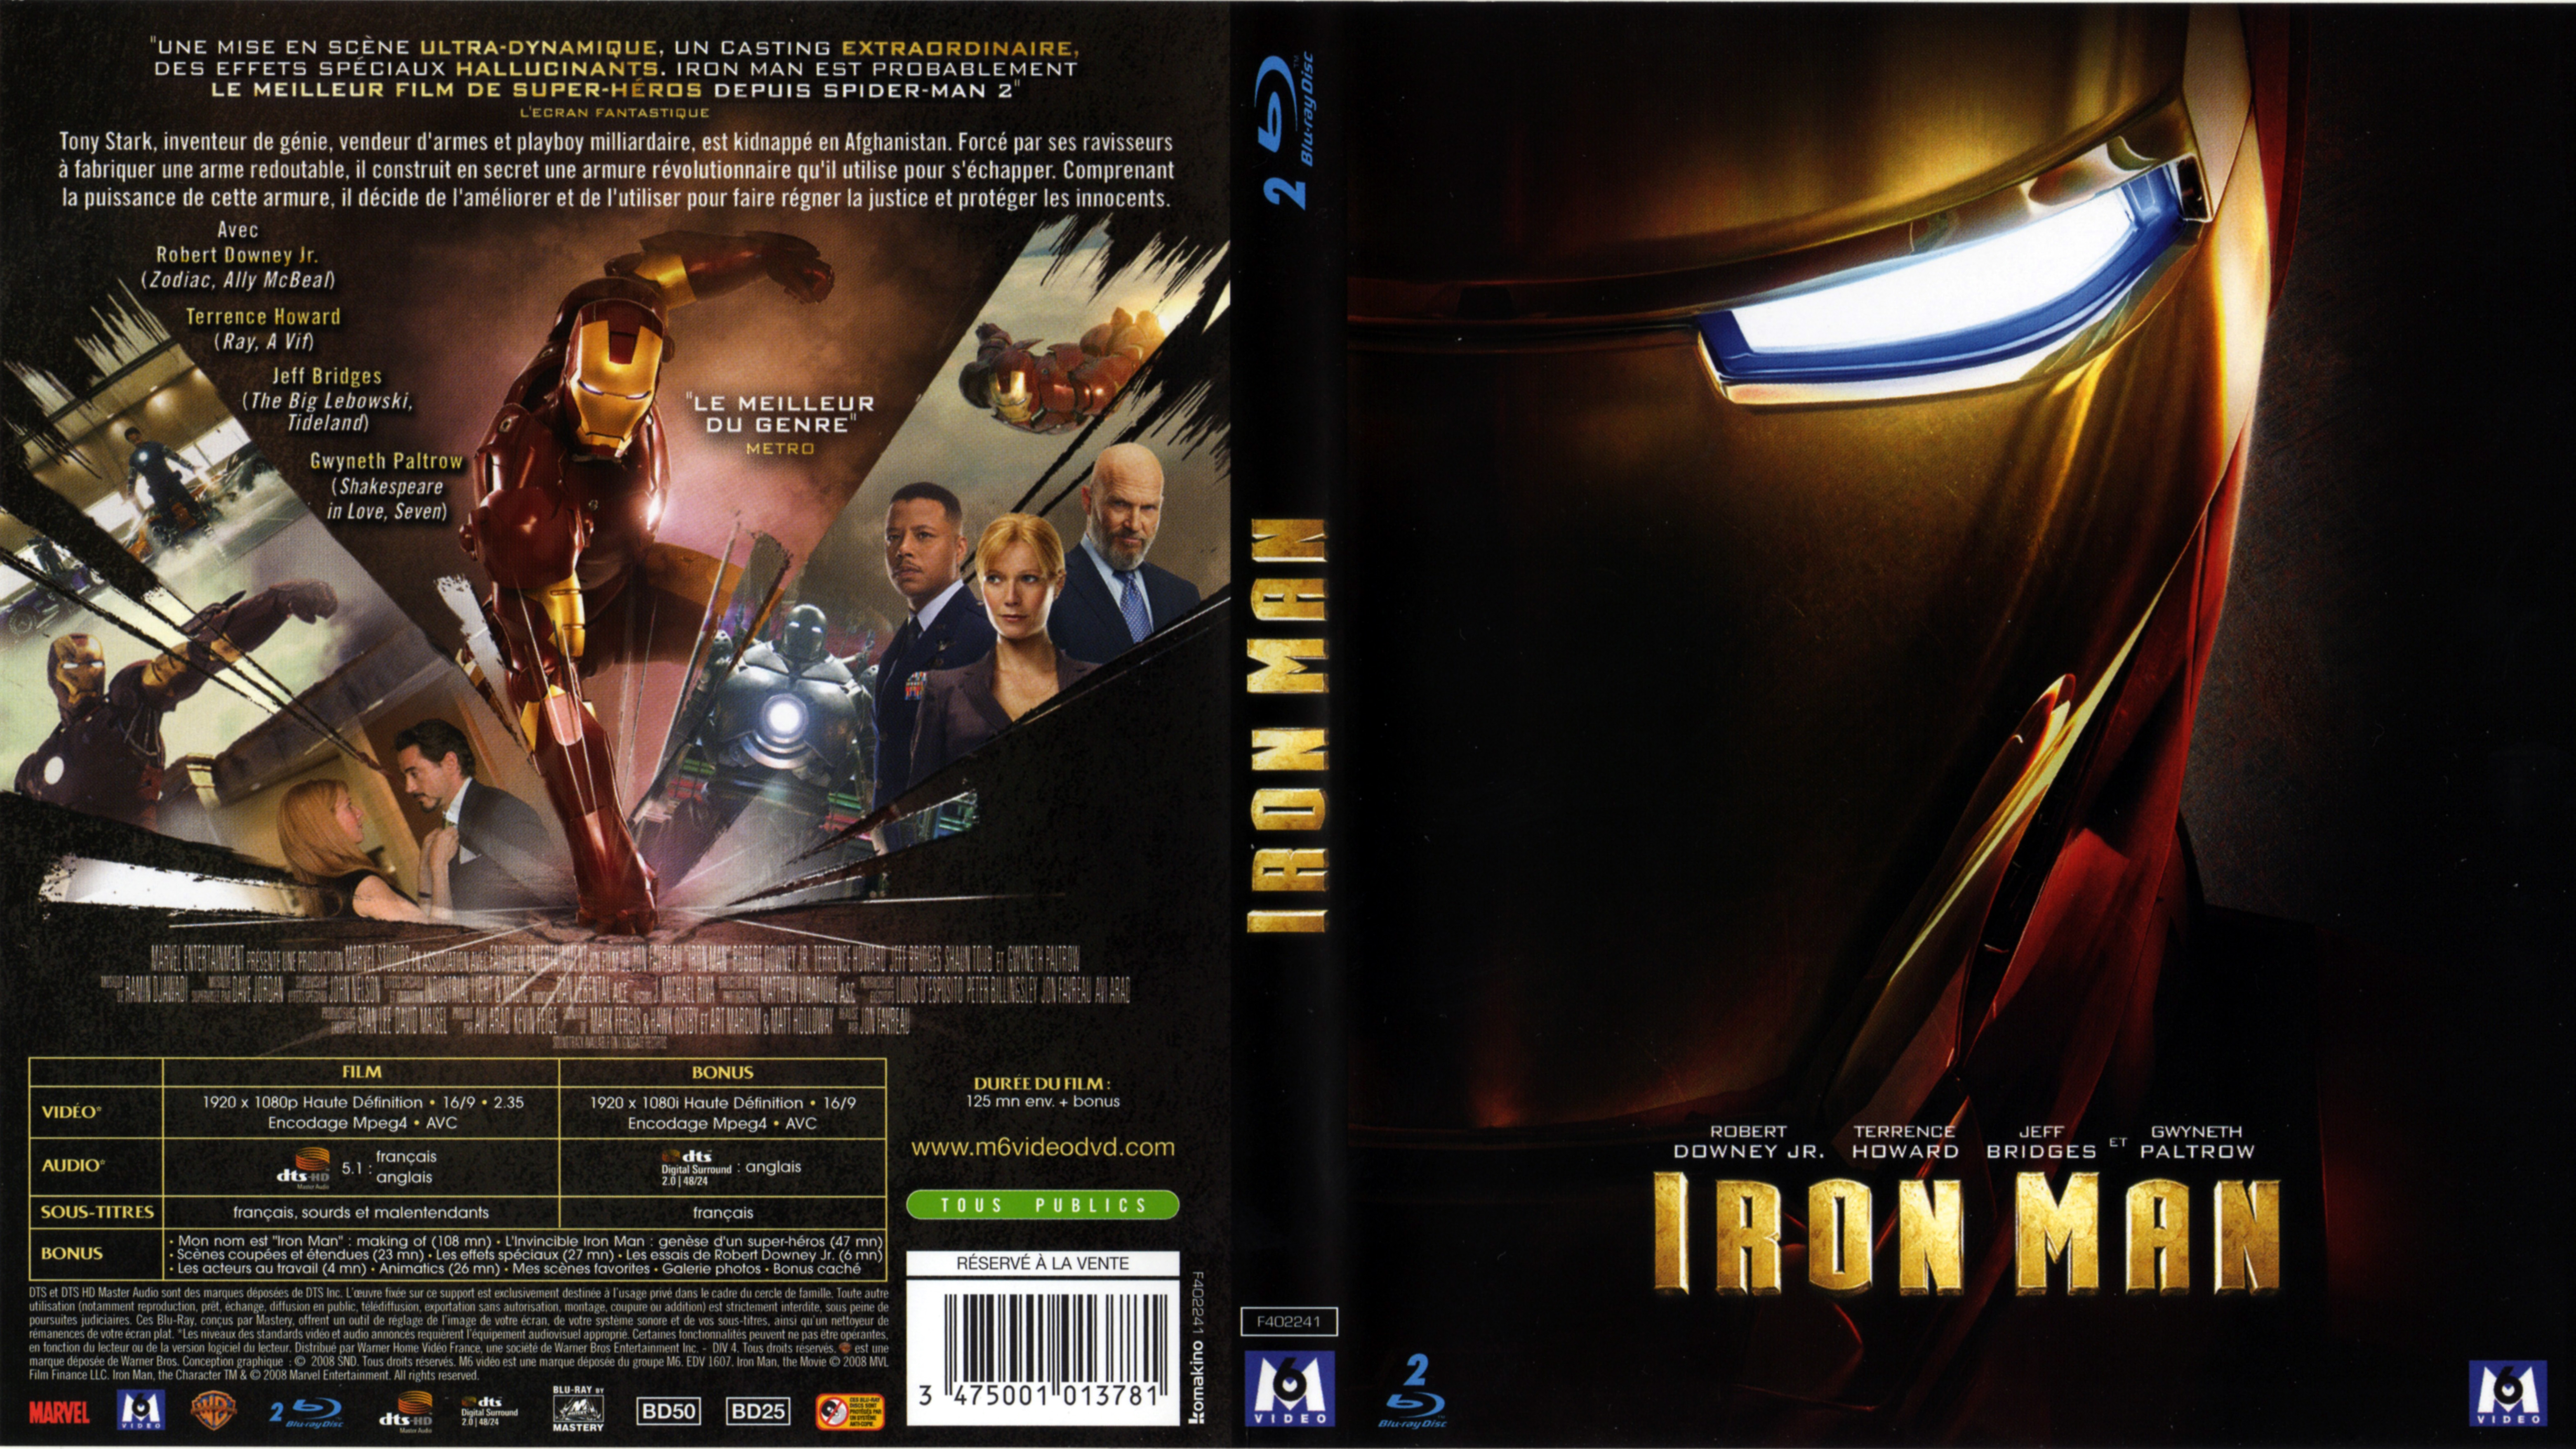 Ironman movie soundtrack